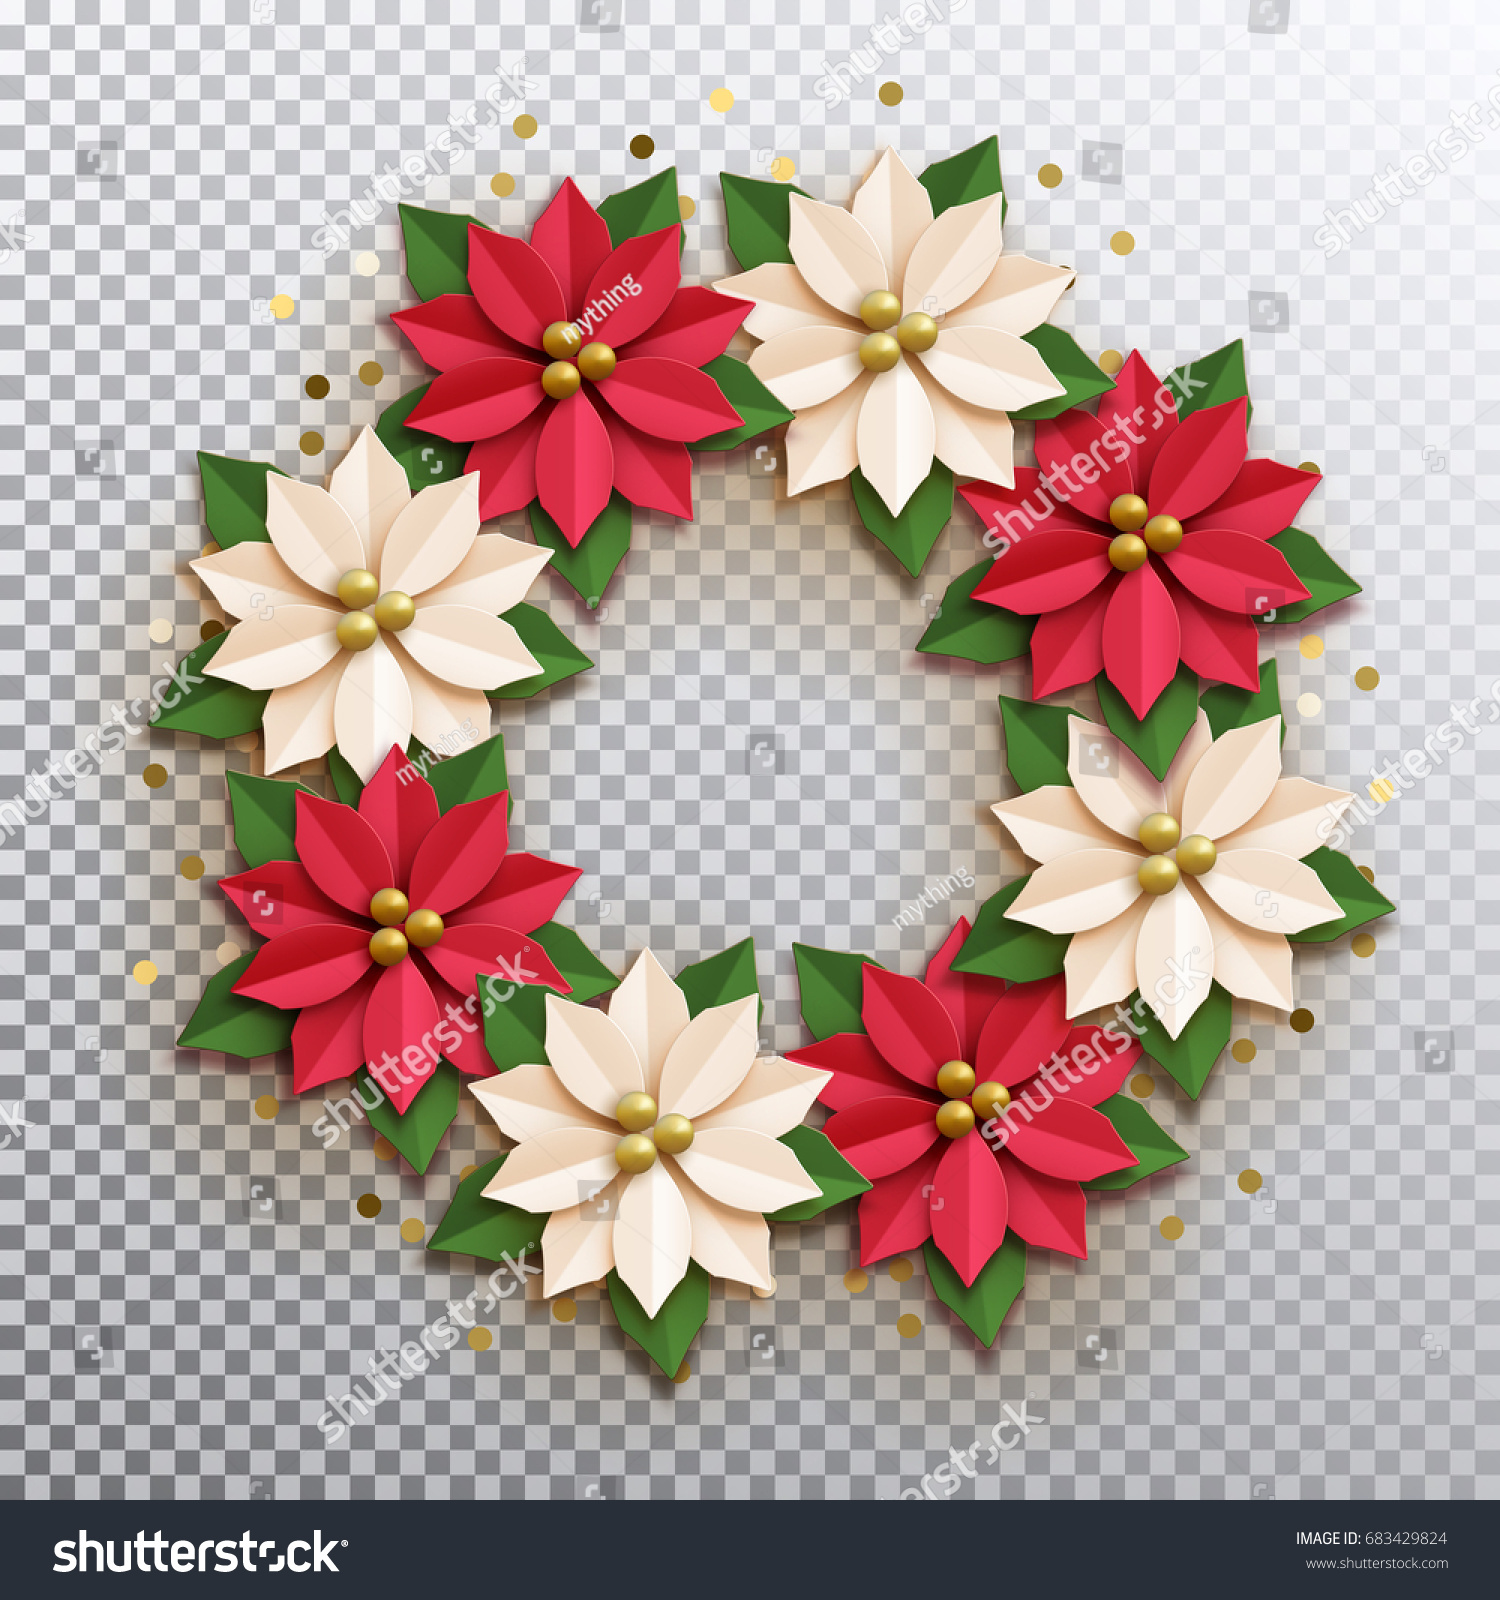 Christmas star paper poinsettia red white stock vector royalty free christmas star paper poinsettia red and white flowers wreath vector illustration icon isolated mightylinksfo